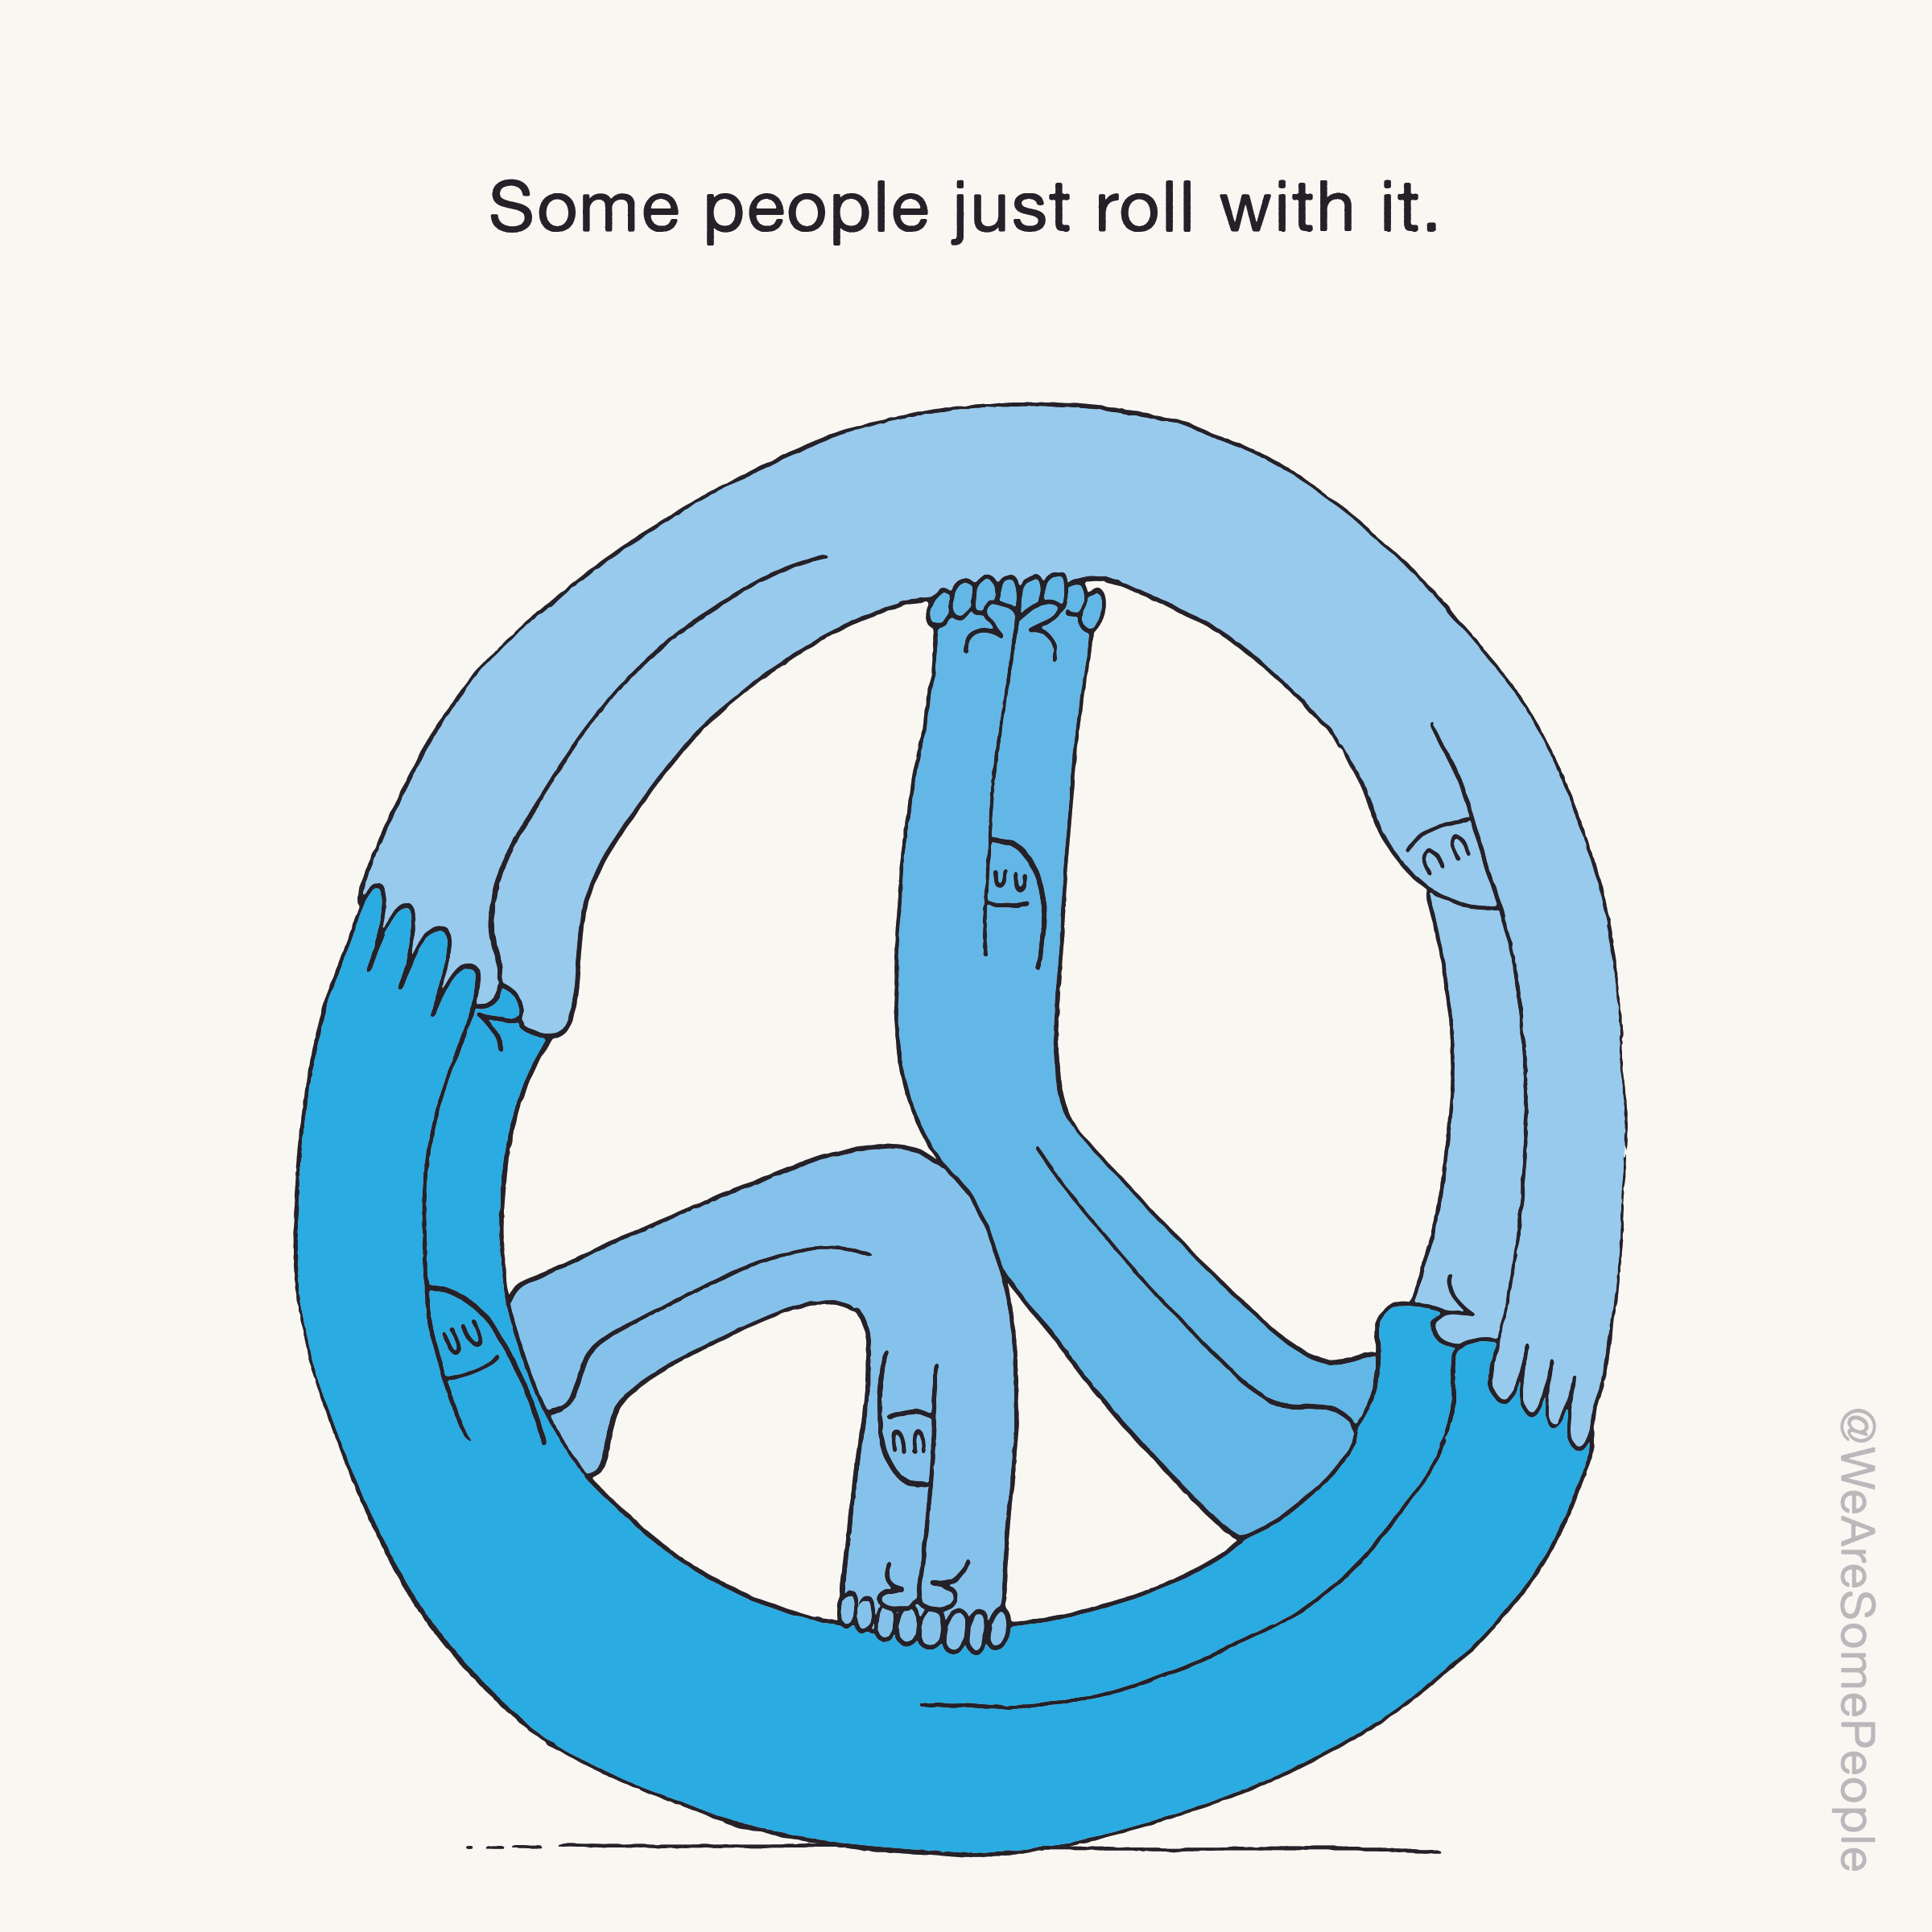 We_Are_Some_People-67-CDR.png